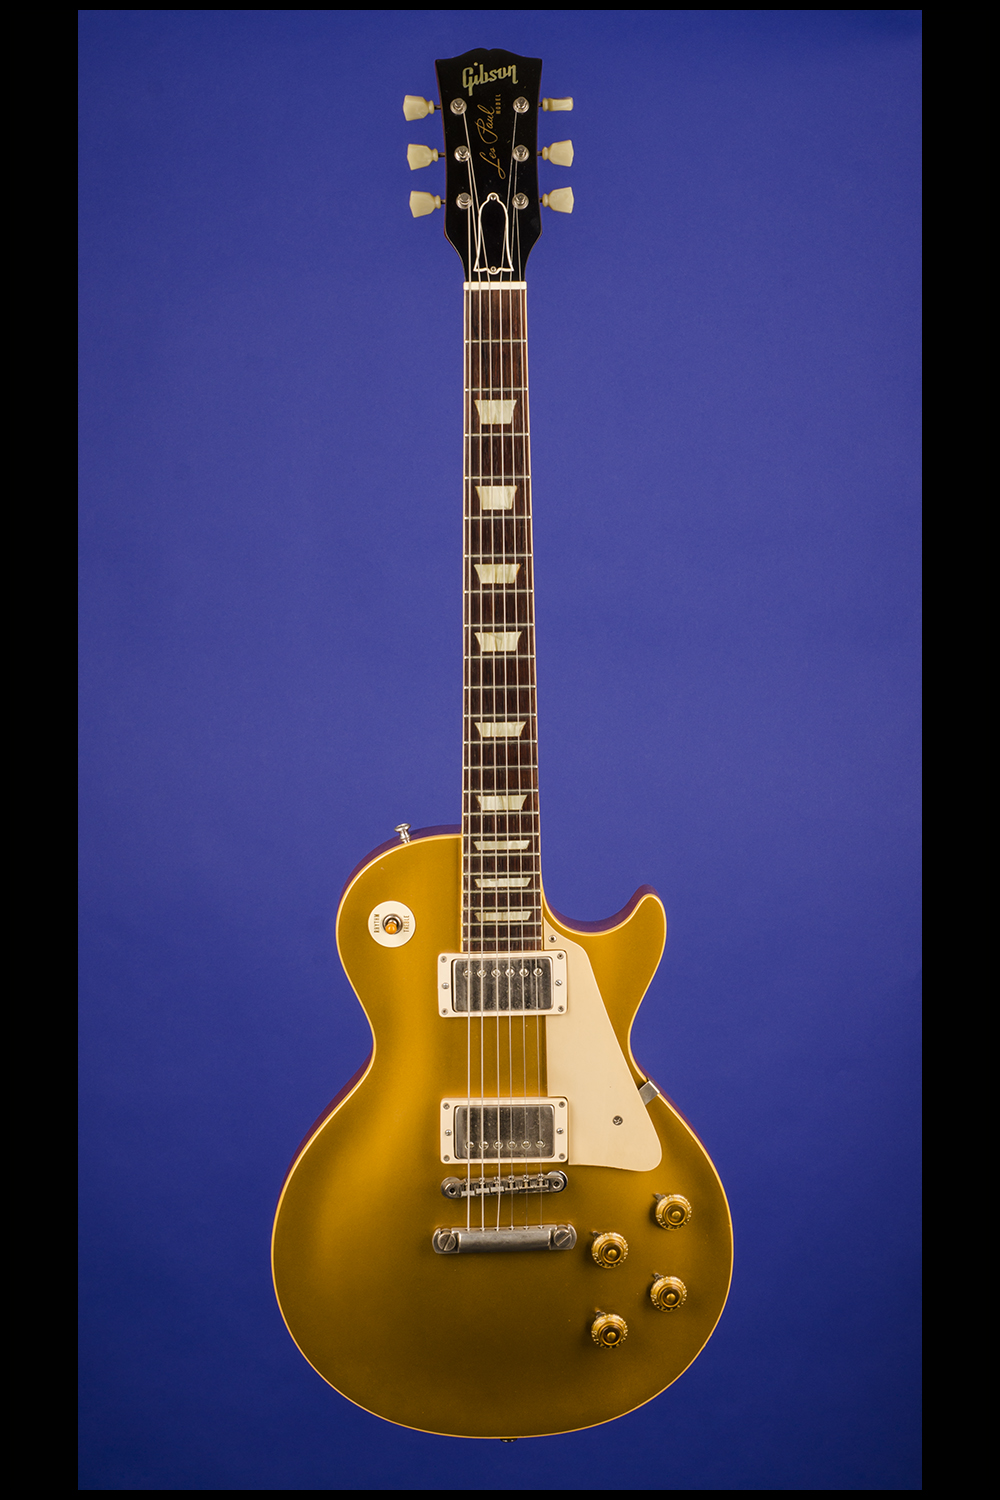 1958 Gibson Pickup Switch Les Paul Wiring Diagram Standard Paf Gold Top Mahogany Guitars Electric Solid Body Fretted Americana 1000x1500